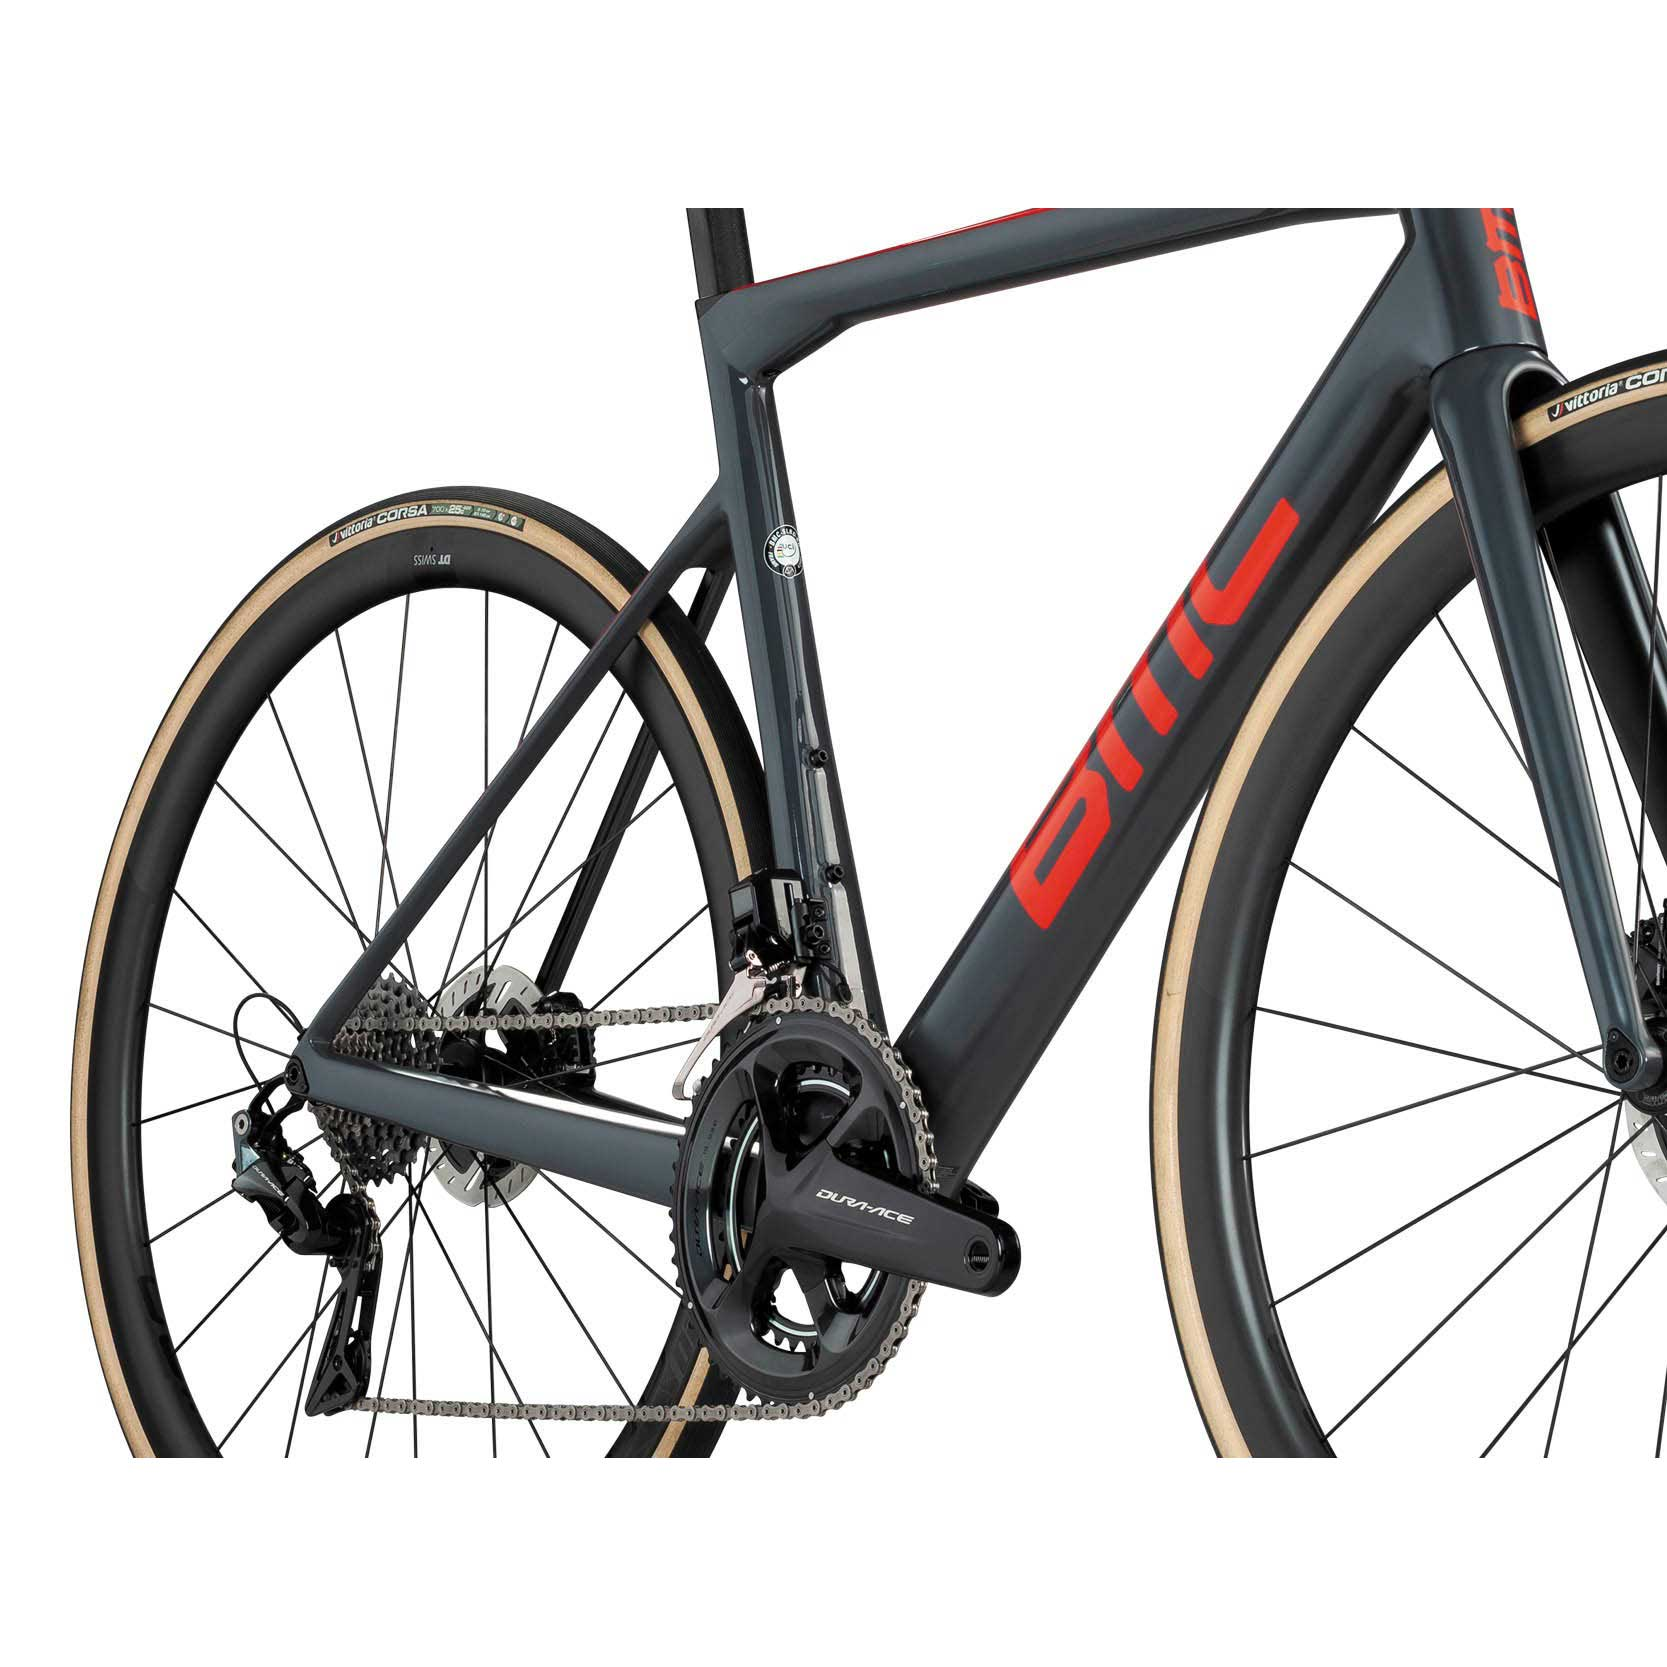 BMC Teammachine SLR TWO Ultegra Di2 Road Bike